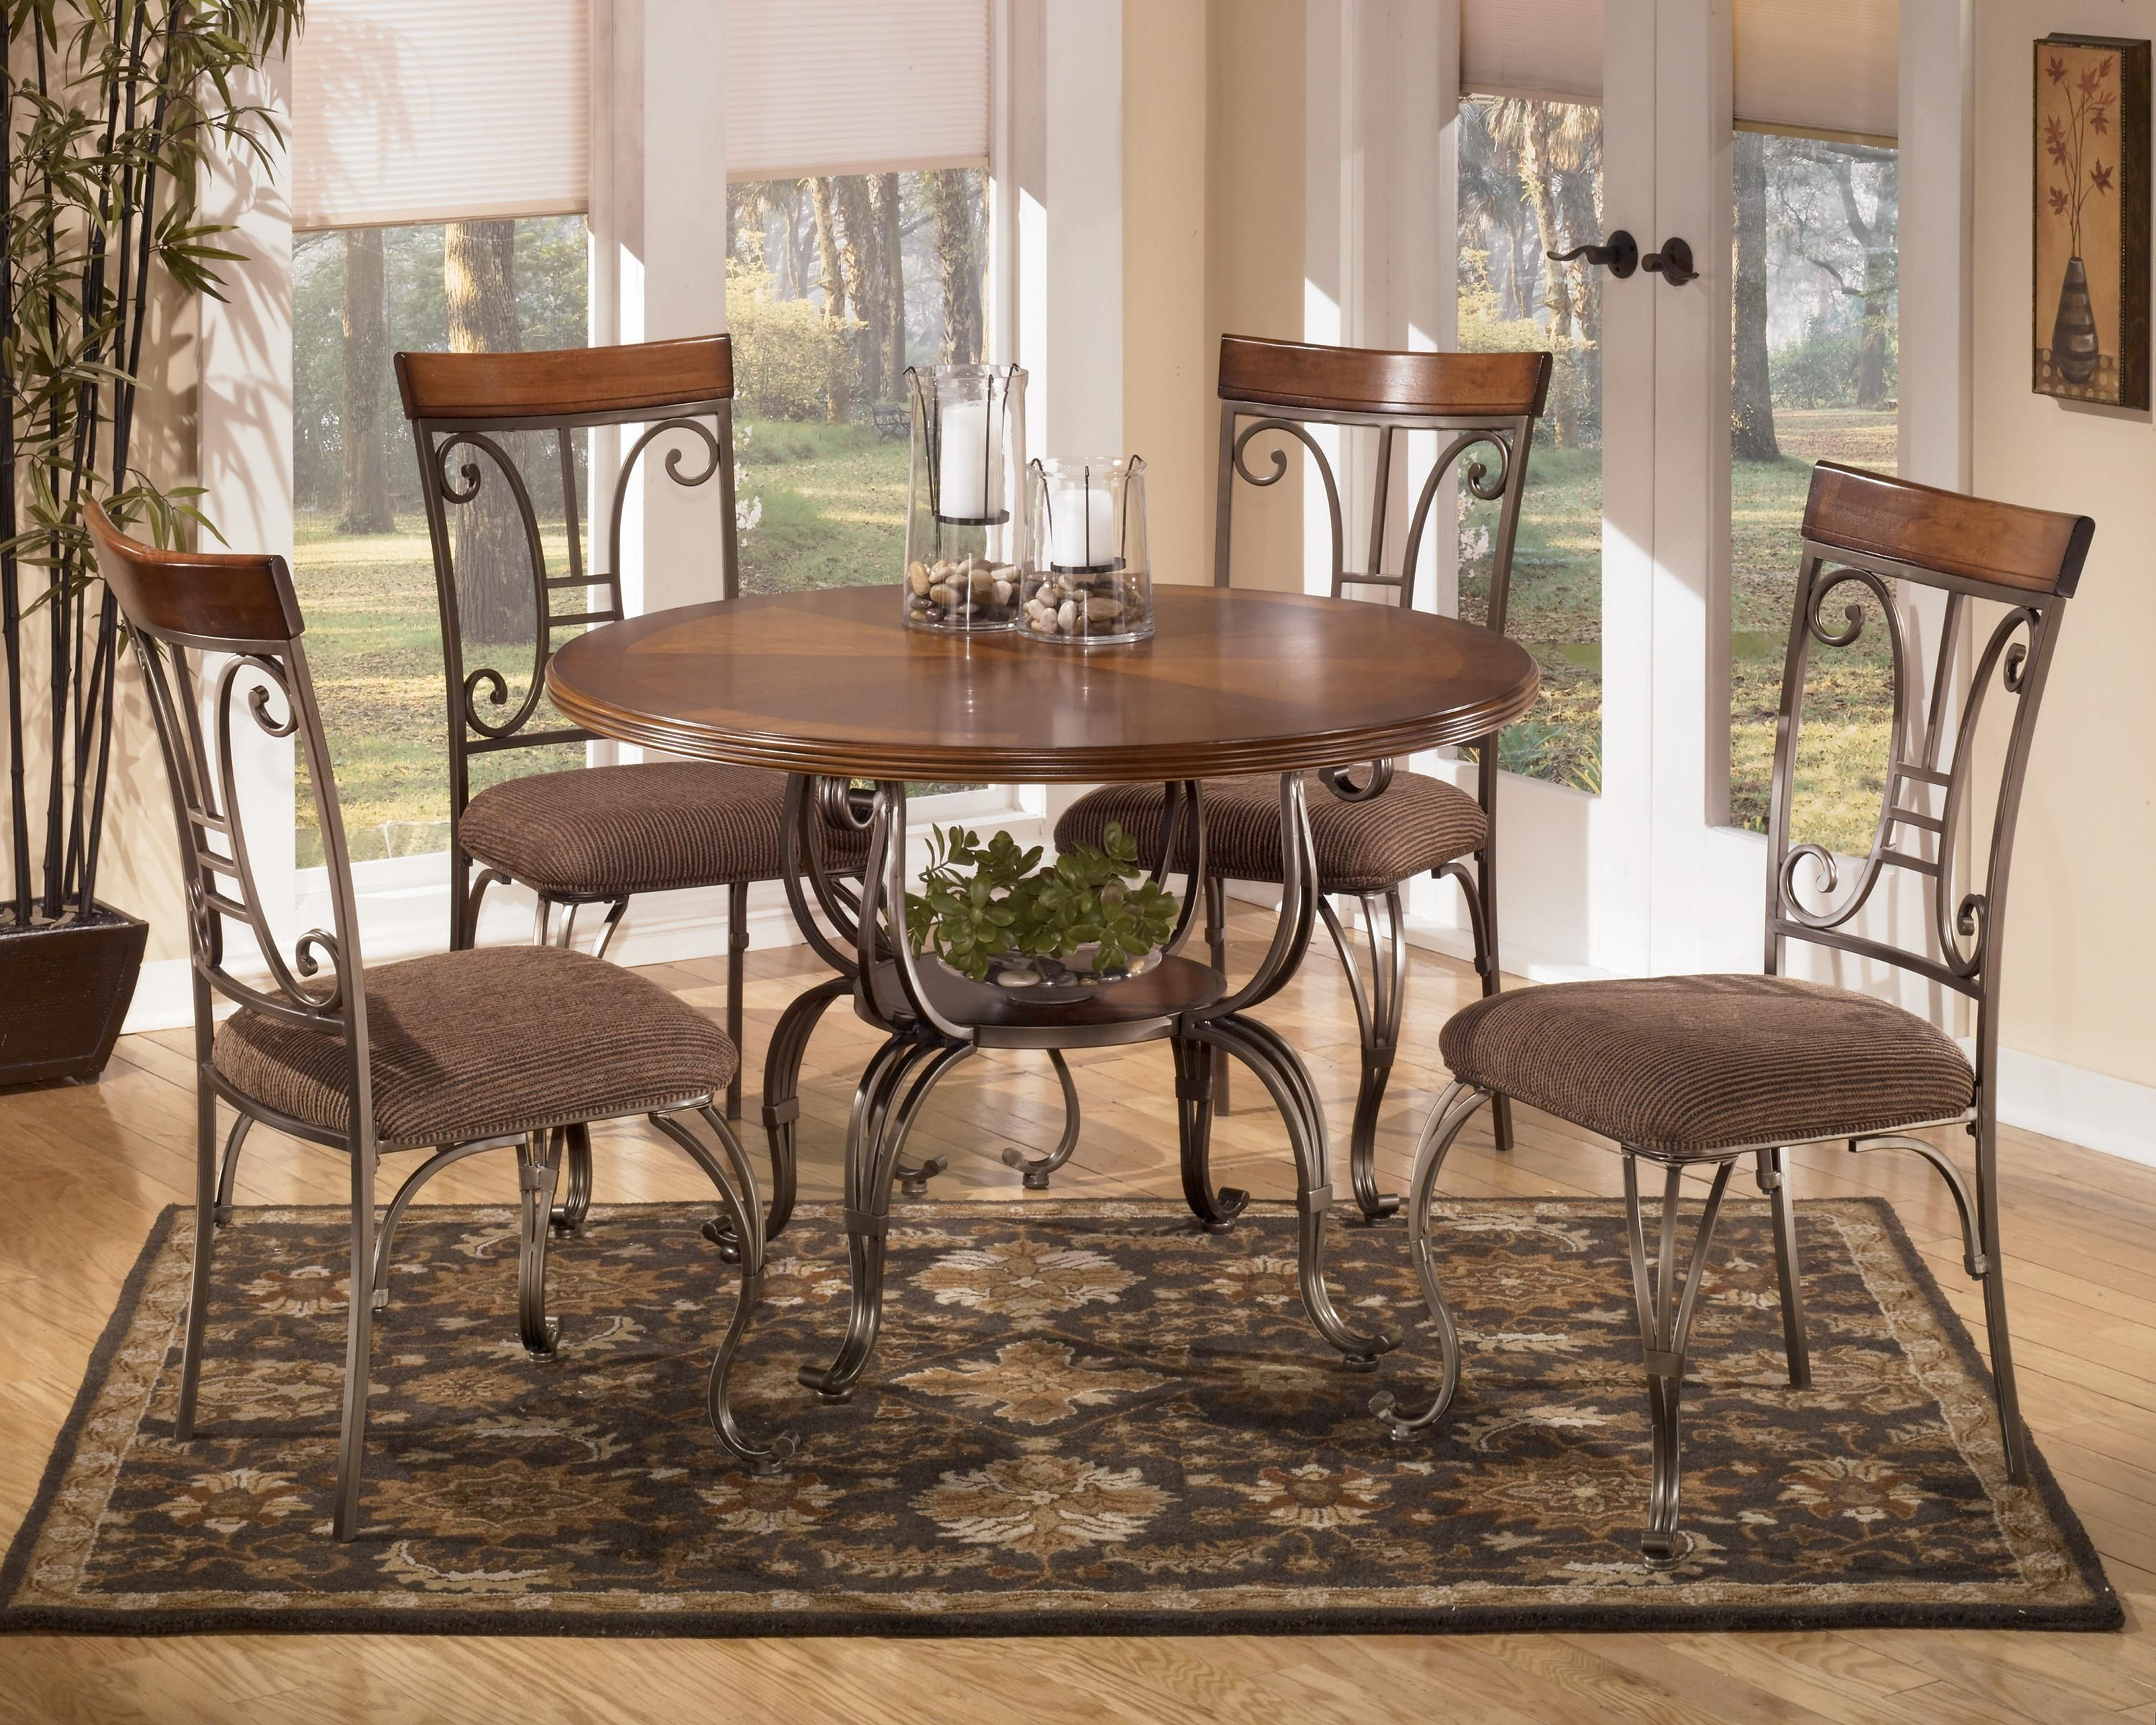 kitchen round table set Plentywood 5 Piece Round Dining Table Set by Signature Design by Ashley